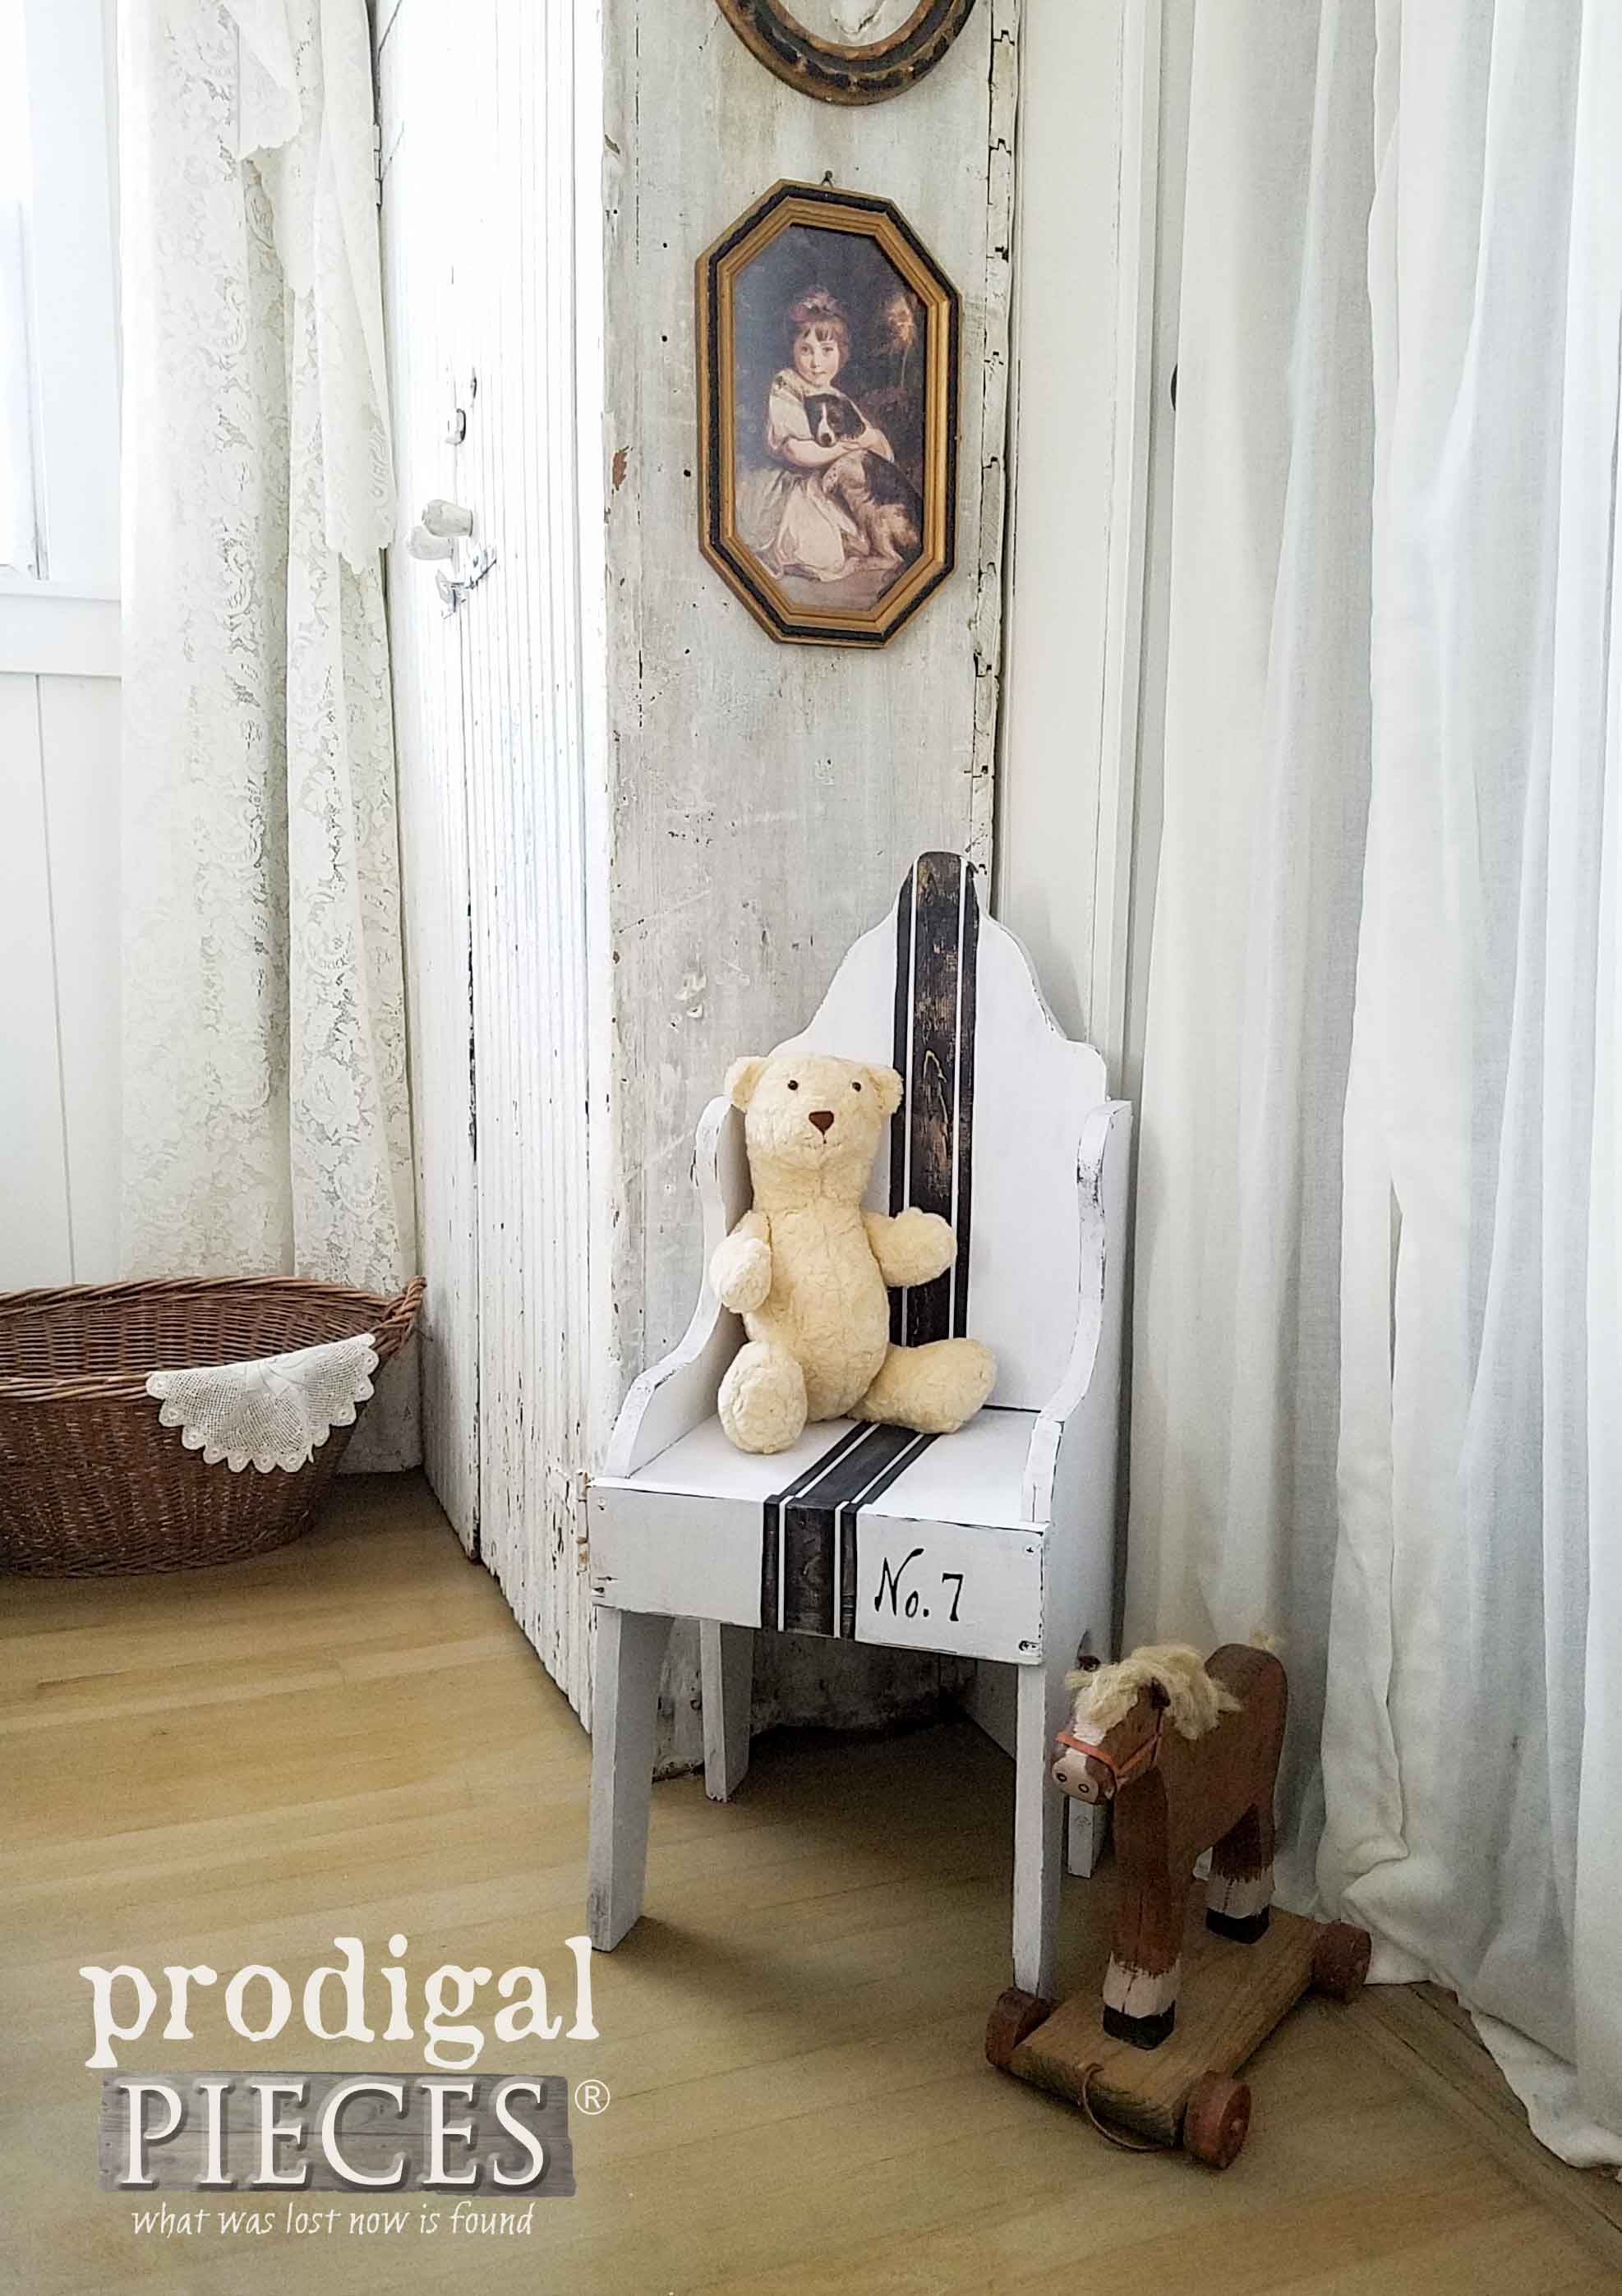 The distressed paint, rustic chair and classic drapes create a vintage space.